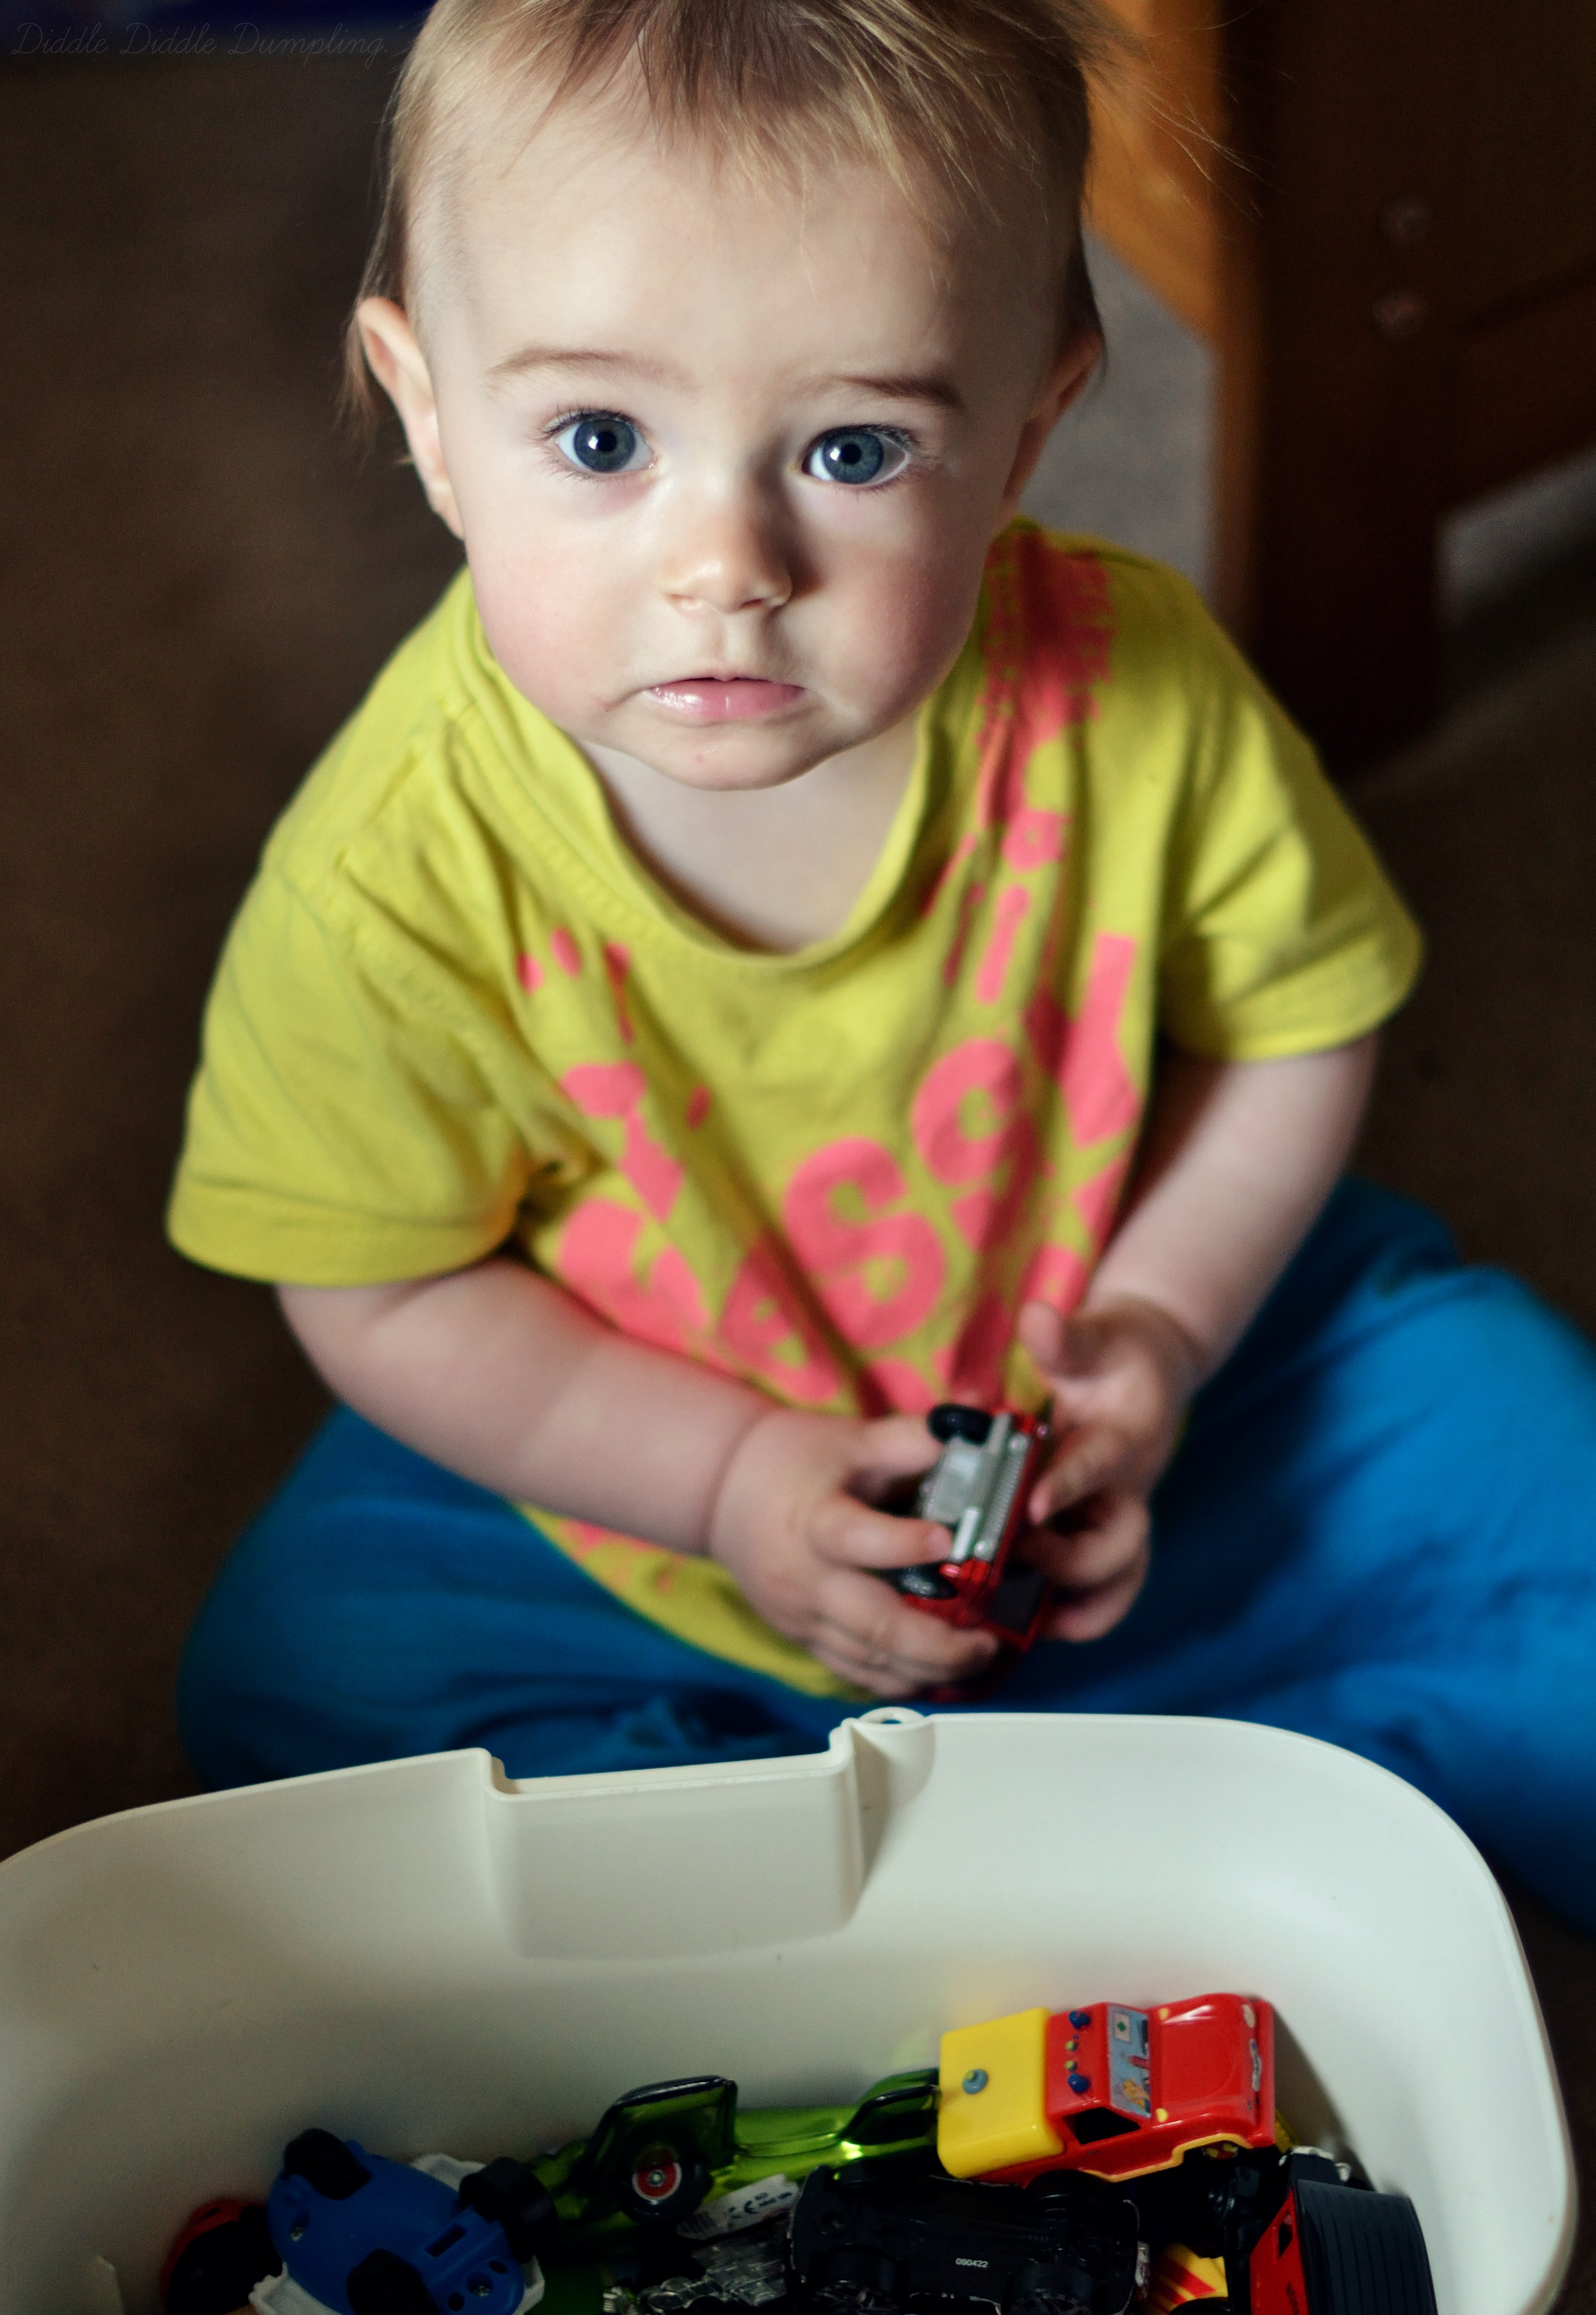 Baby David playing with the toy cars.